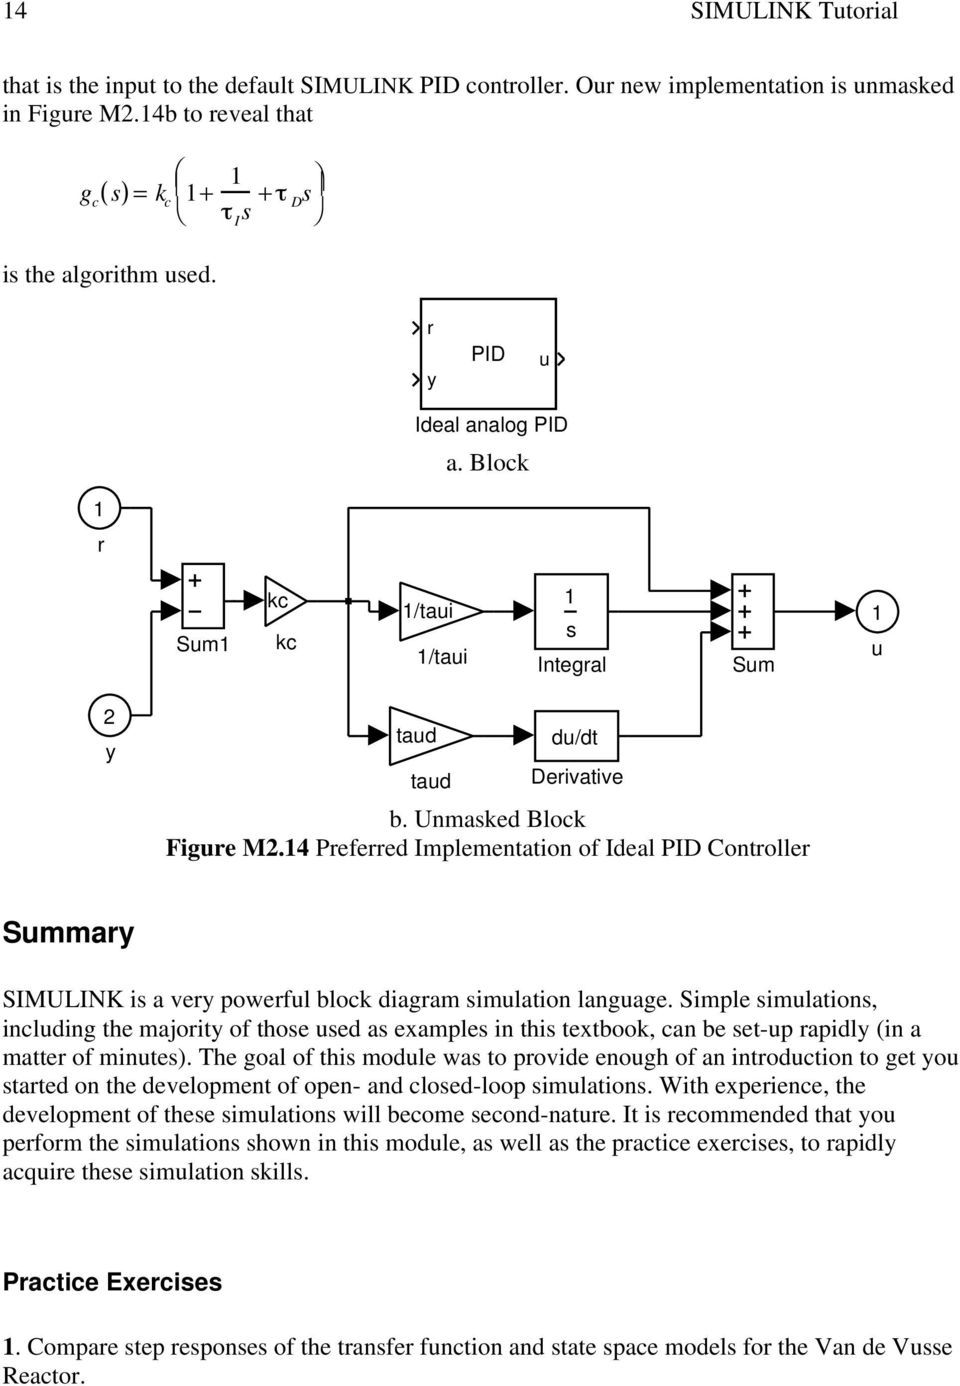 Module 2 Introduction To Simulink Pdf P Id Block Diagram 4 Preferred Implementation Of Ideal Pid Controller Summary Is A Very Powerful Simulation